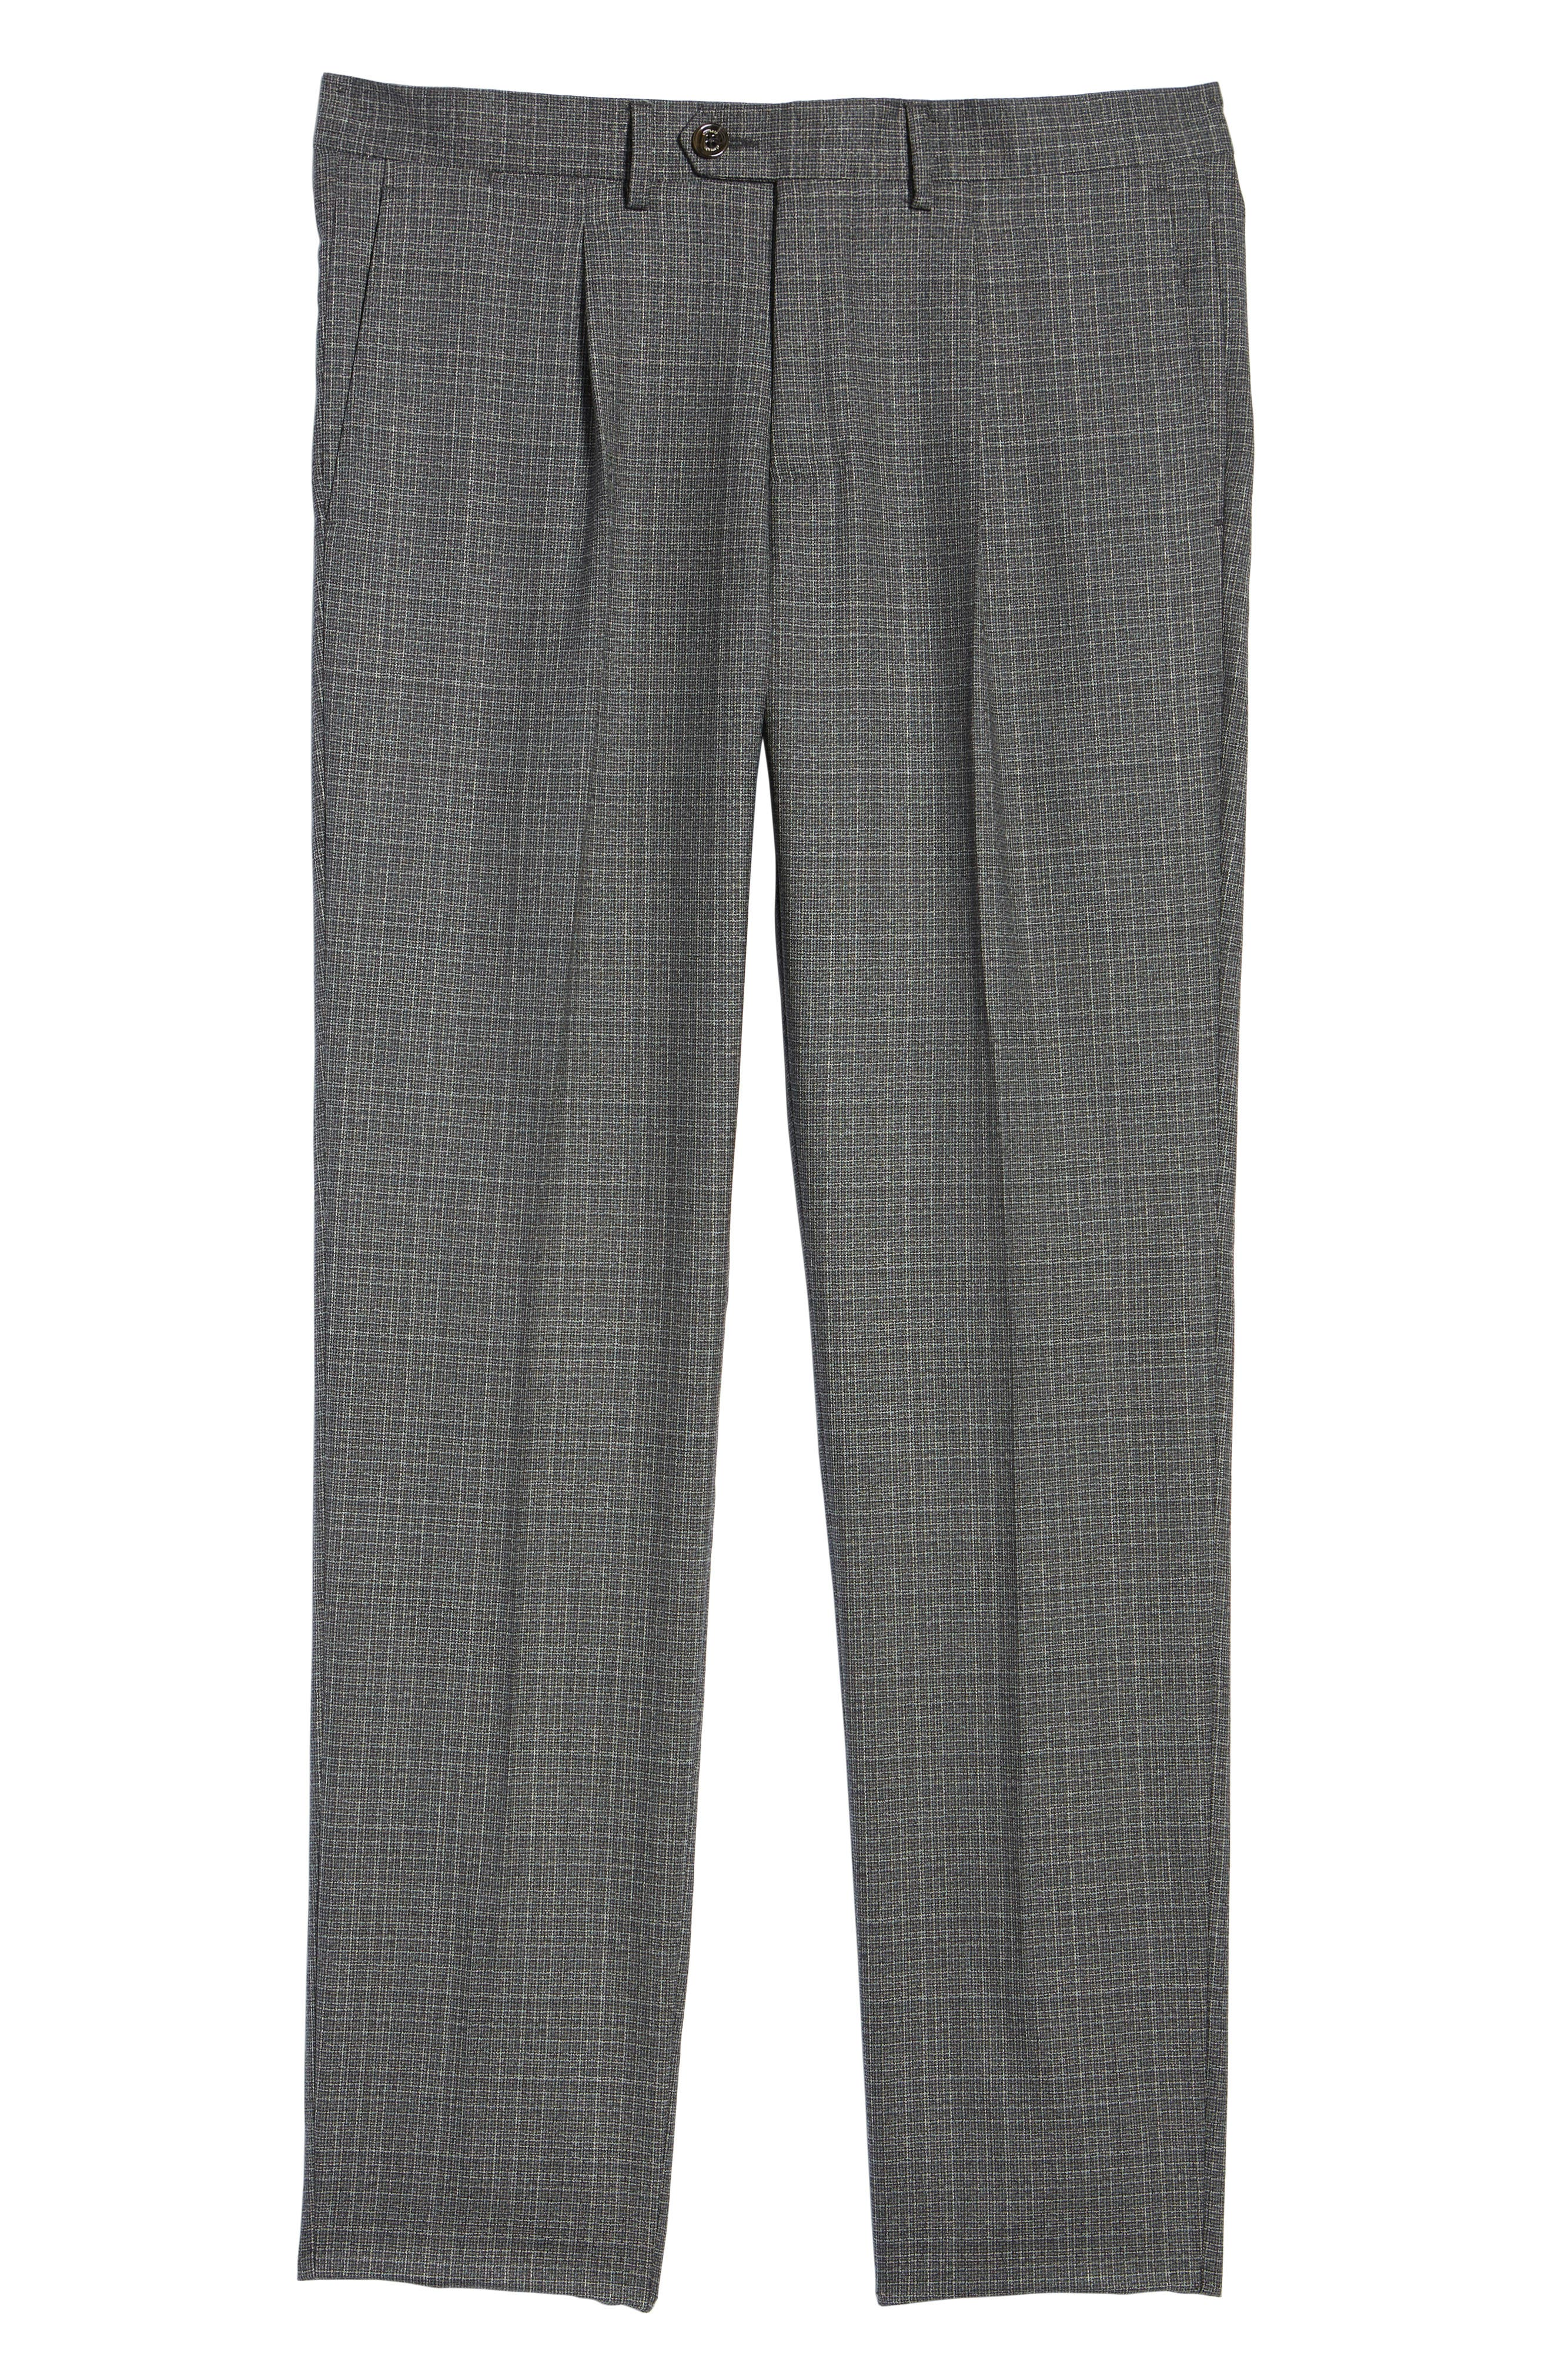 Pleated Check Wool Trousers,                             Alternate thumbnail 6, color,